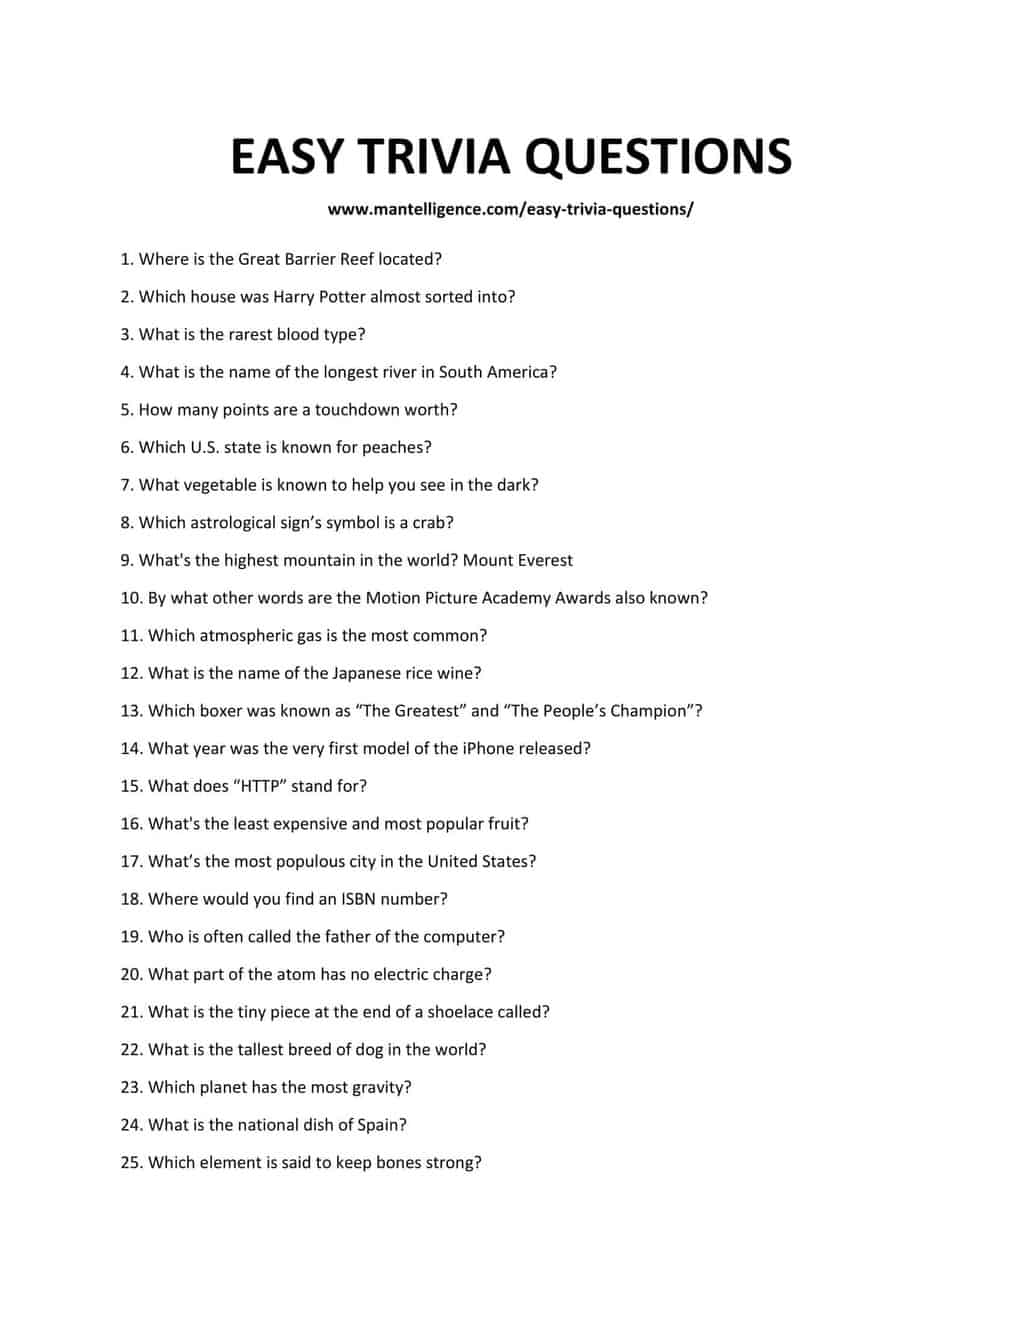 EASY TRIVIA QUESTIONS-1 (1)